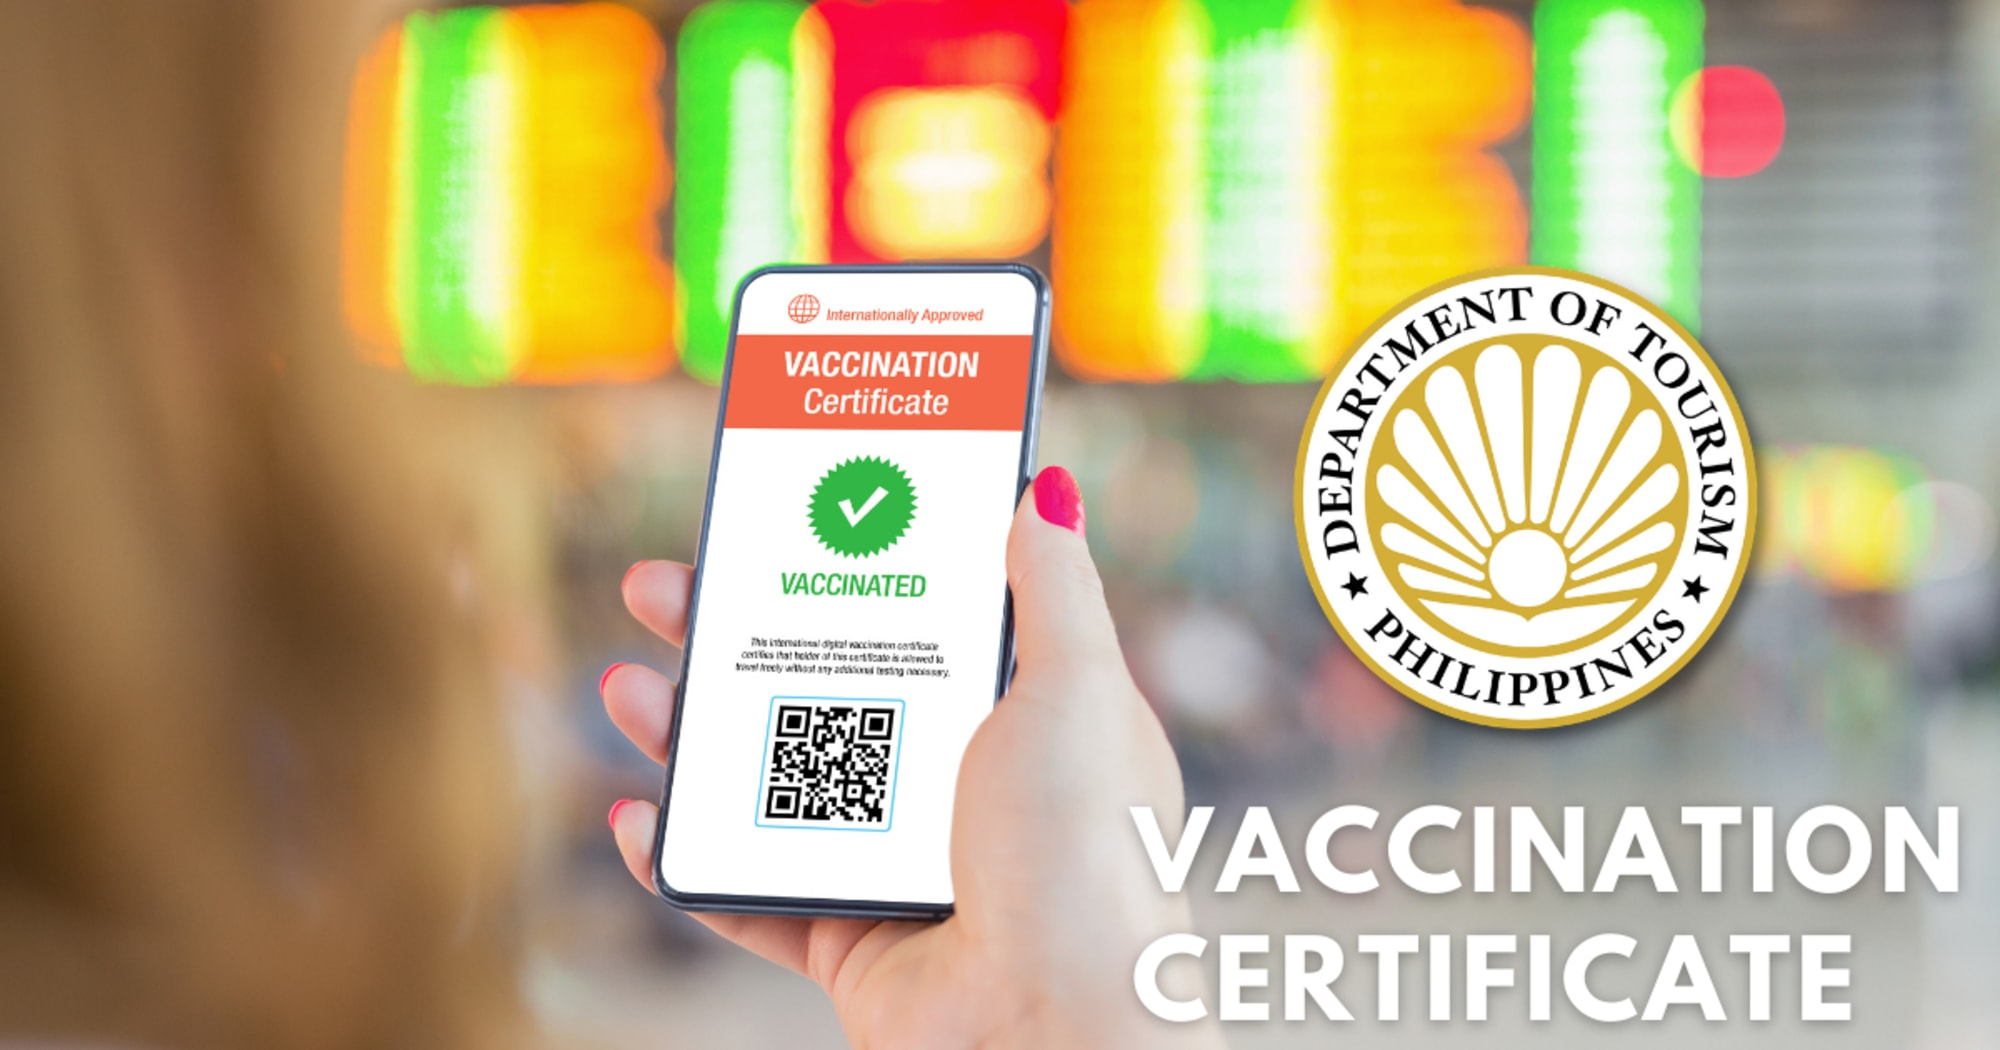 DOT is searching for ways to authenticate vaccine certificates at the airports